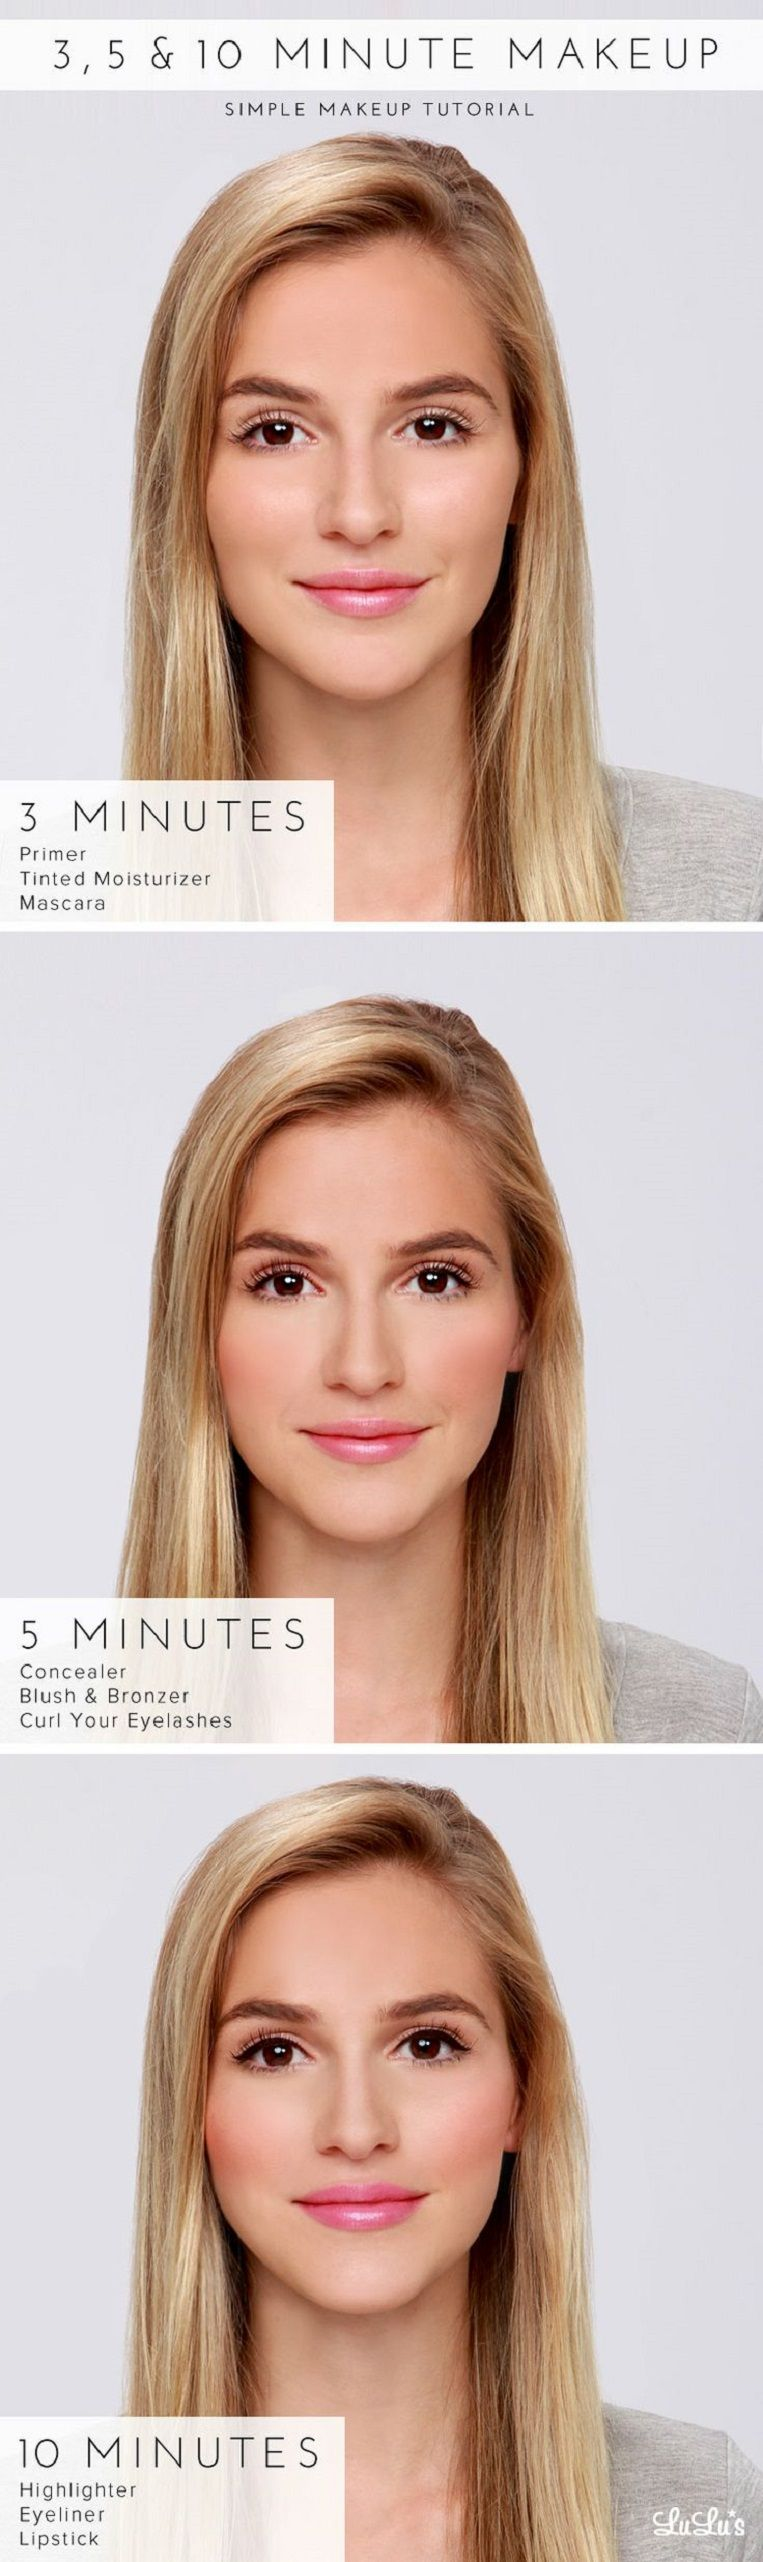 Quick makeup for work tutorials makeup tutorials and easy looking for quick easy 10 minute makeup tutorials for work weve rounded up 15 professional natural makeup looks that you can do in 10 minutes or less baditri Images